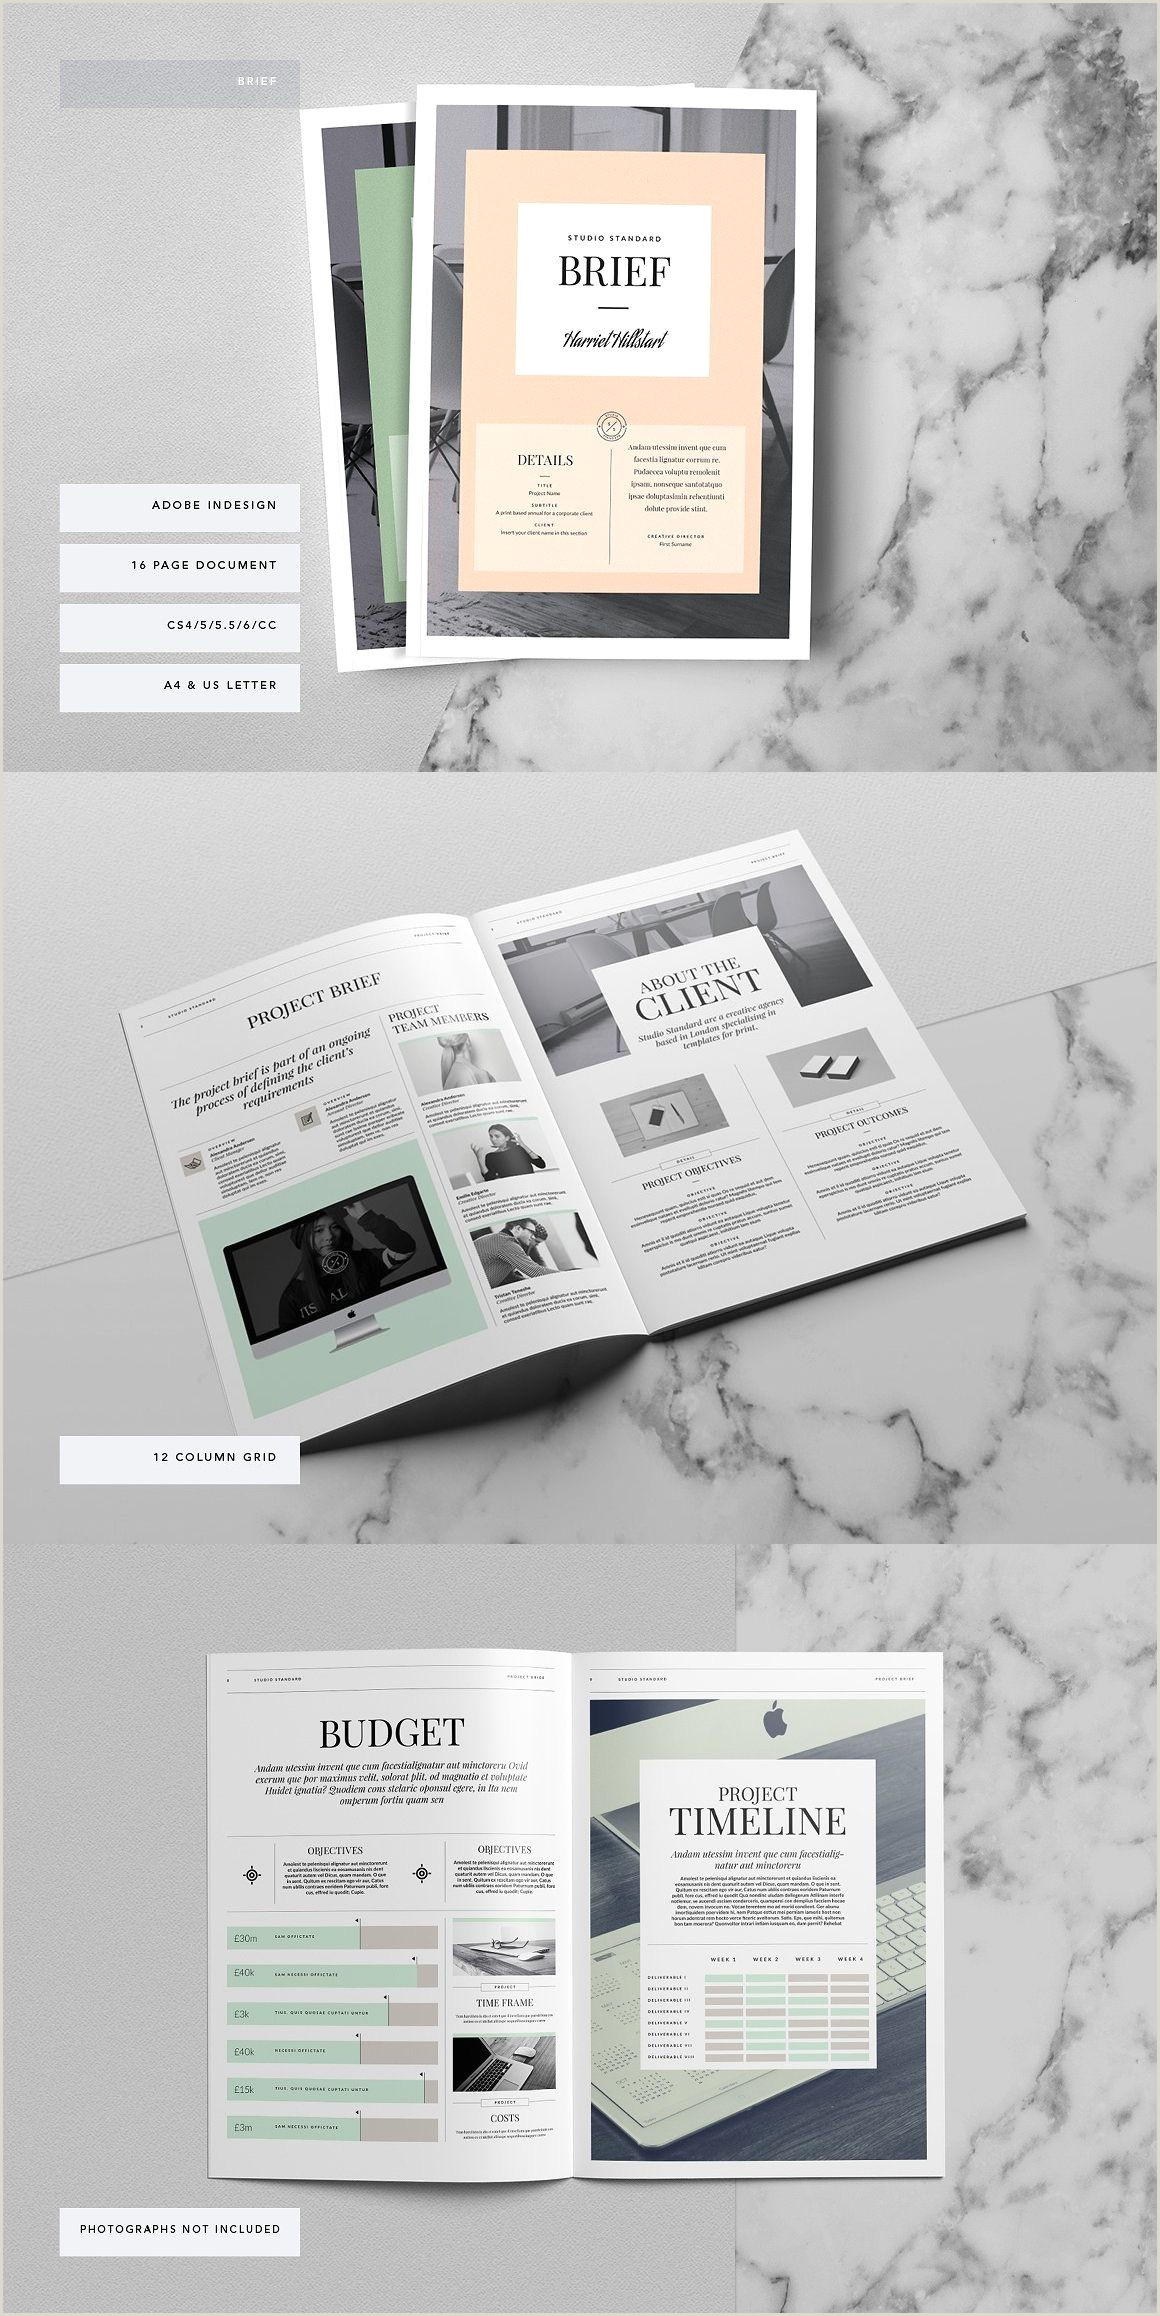 Kingsley Brief Template Graphic Design